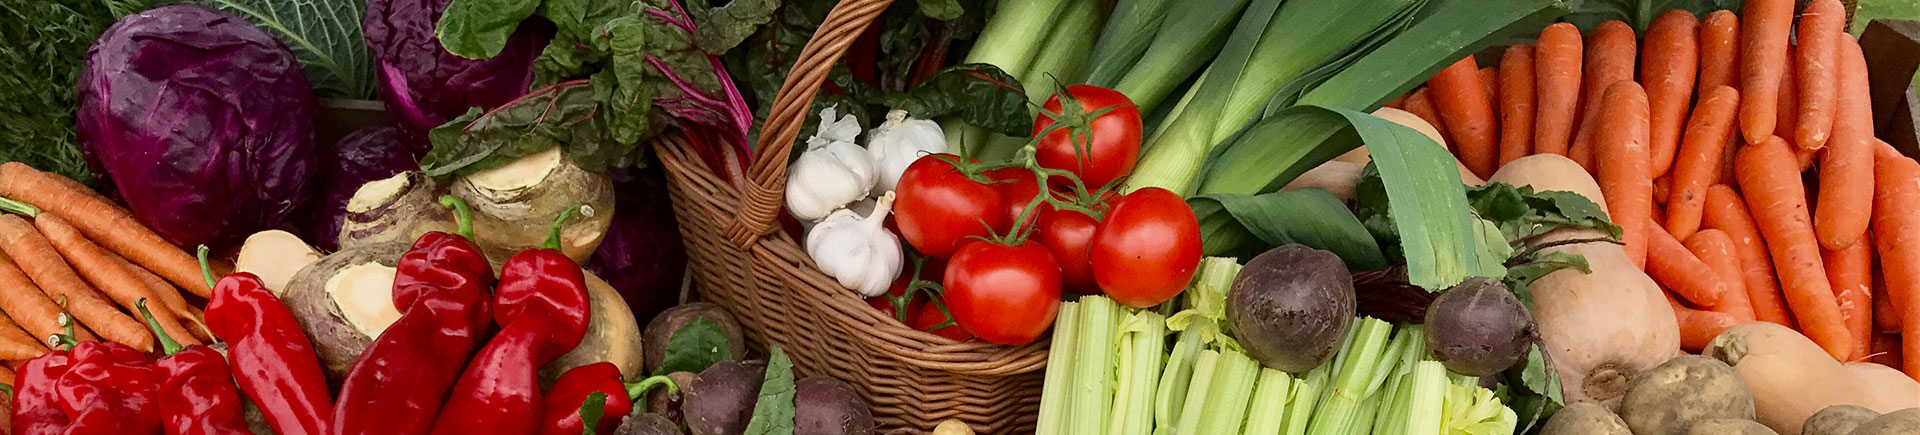 A selection of vegetables in baskets from a local small holding near to Acres Insurance Brokers head office